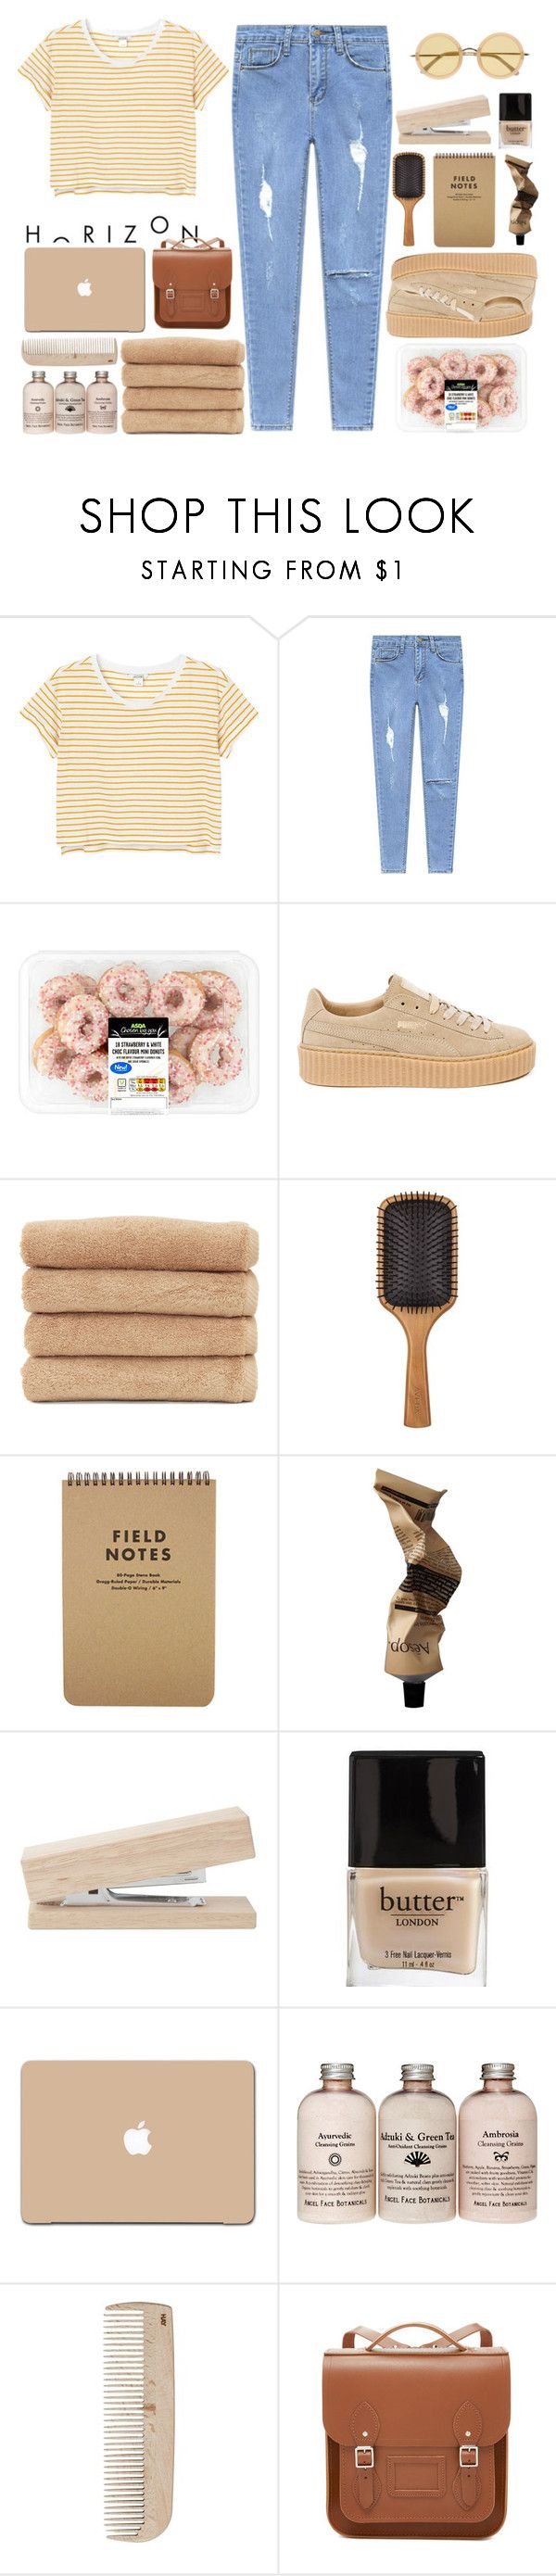 """""""h"""" by sofhiree20 ❤ liked on Polyvore featuring Monki, Puma, Linum Home Textiles, Aveda, Aesop, Butter London, 3M, HAY, The Cambridge Satchel Company and Linda Farrow"""